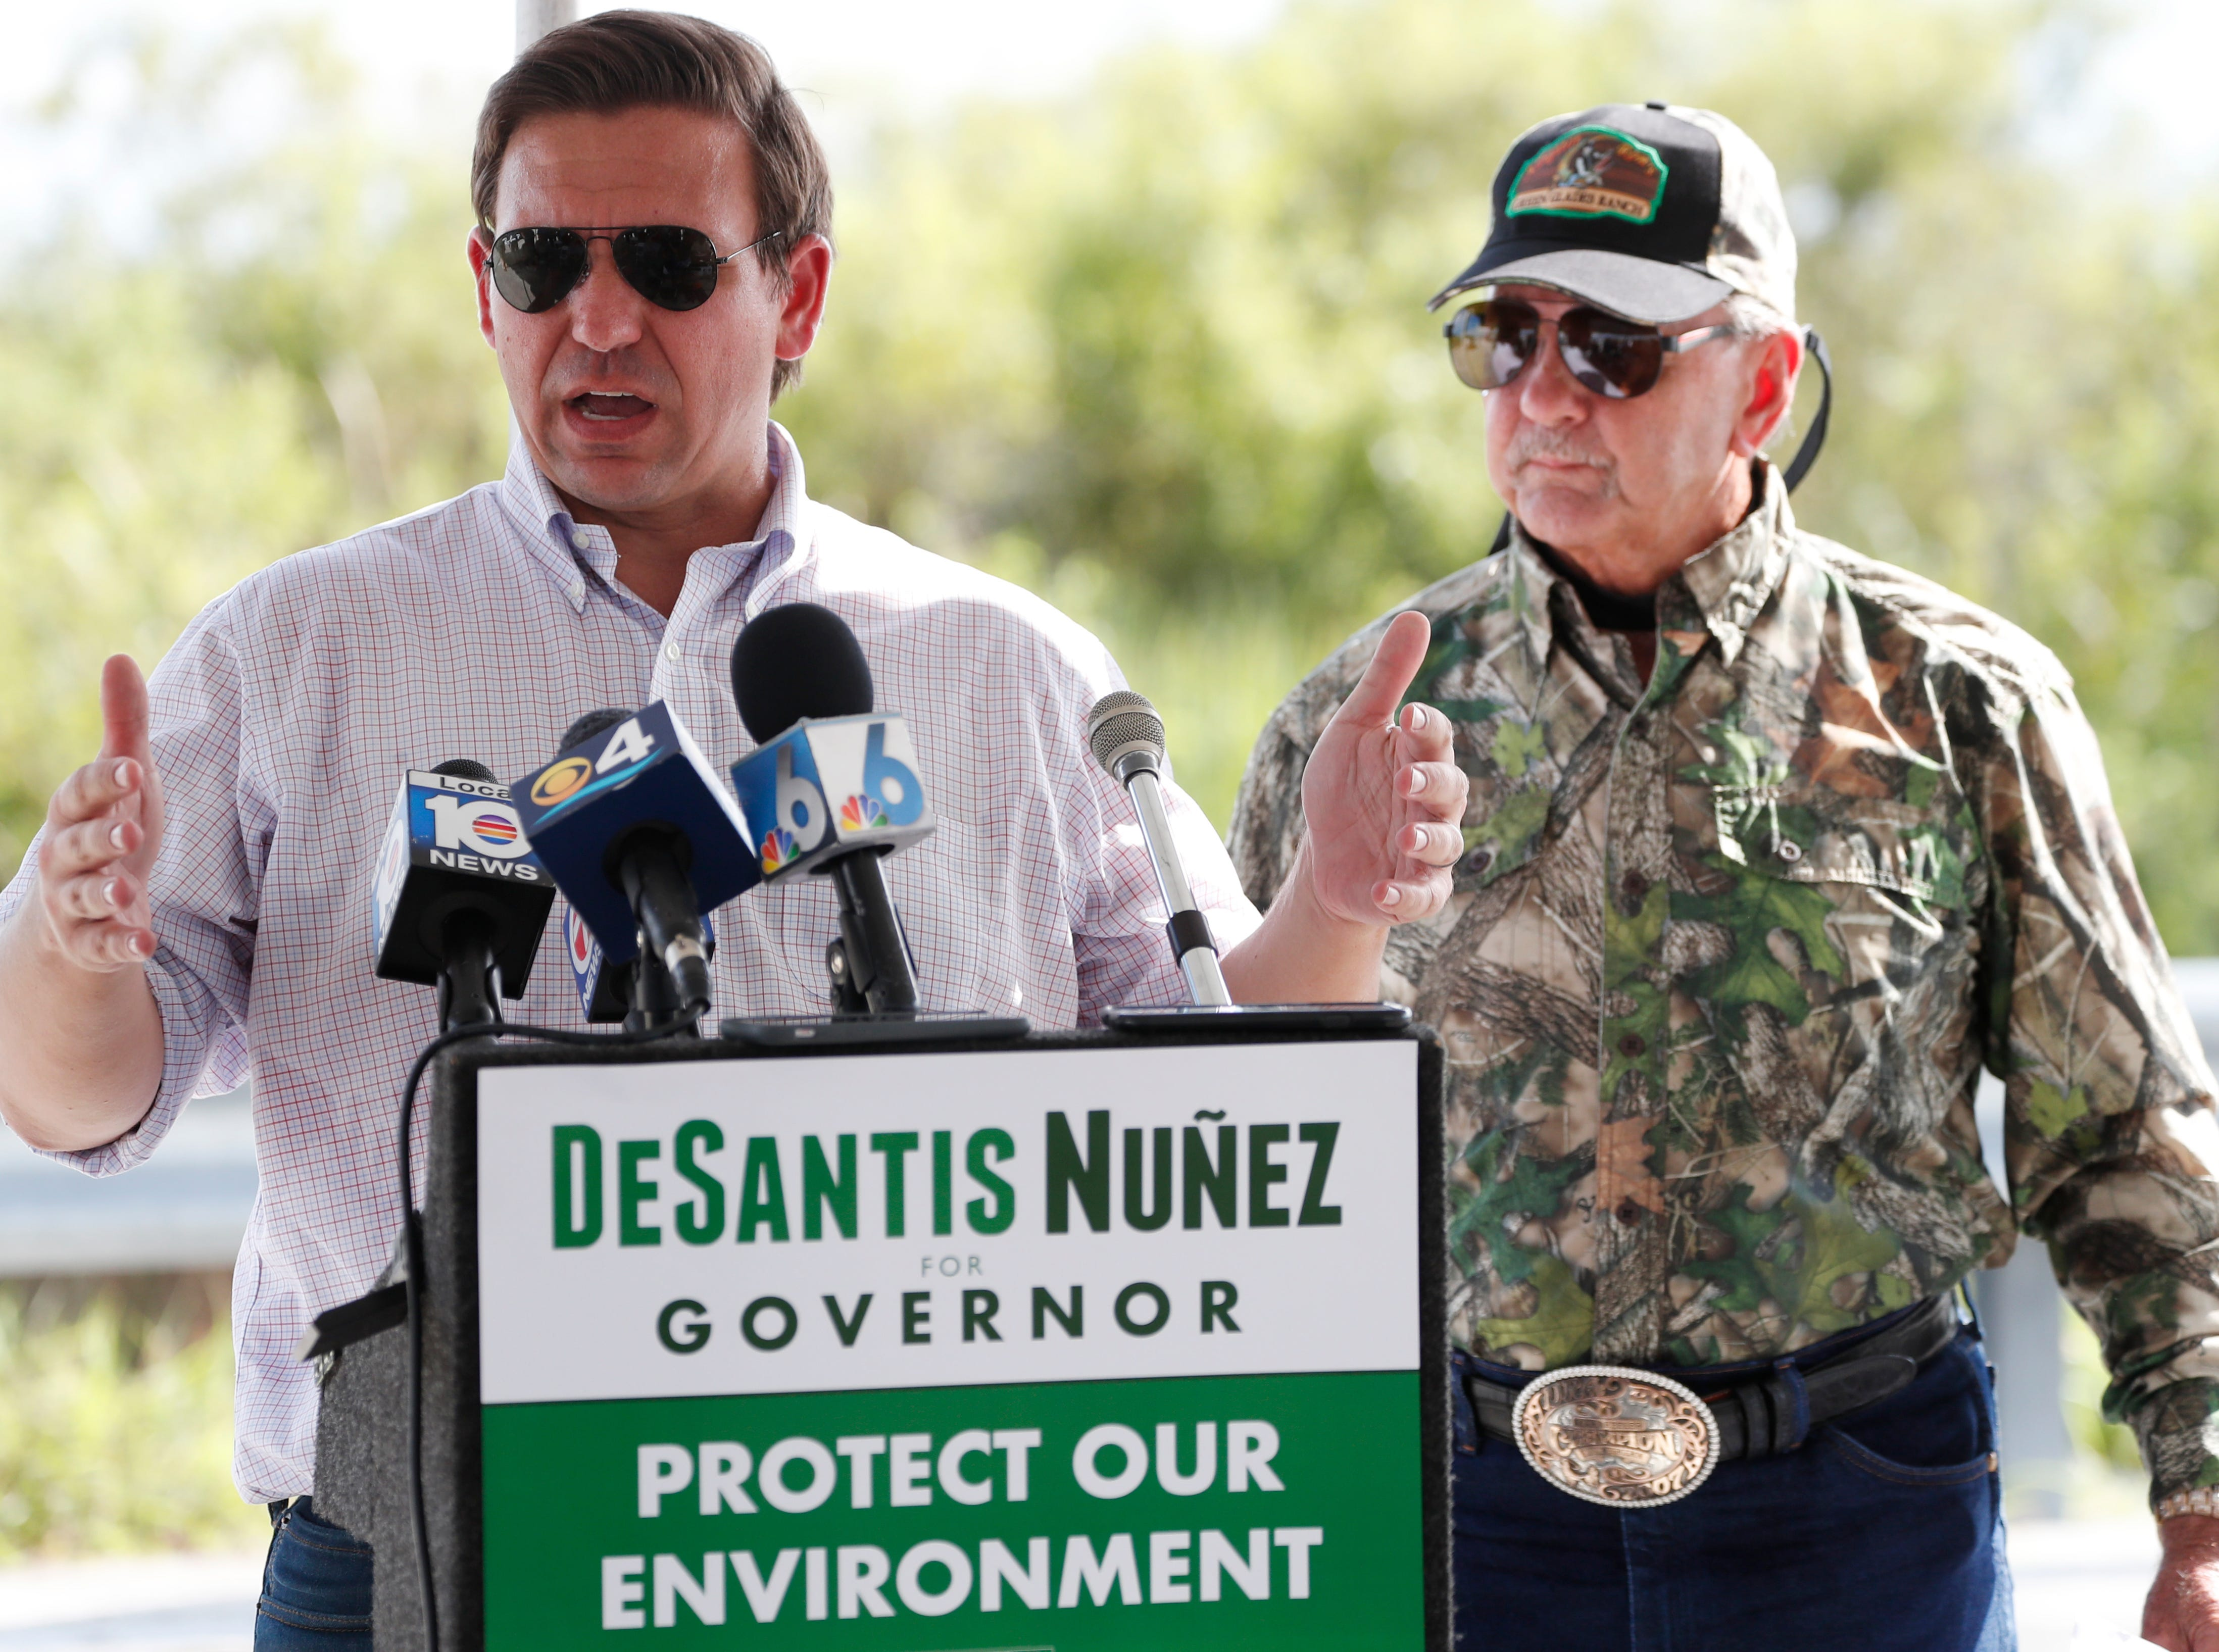 Republican candidate for Florida Governor Ron DeSantis, left, speaks during a news conference along with Gladesman and former Florida Fish and Wildlife Conservation commissioner Ron Bergeron, right, after an airboat tour of the Florida Everglades, Wednesday, Sept. 12, 2018, in Fort Lauderdale, Fla. (AP Photo/Wilfredo Lee)